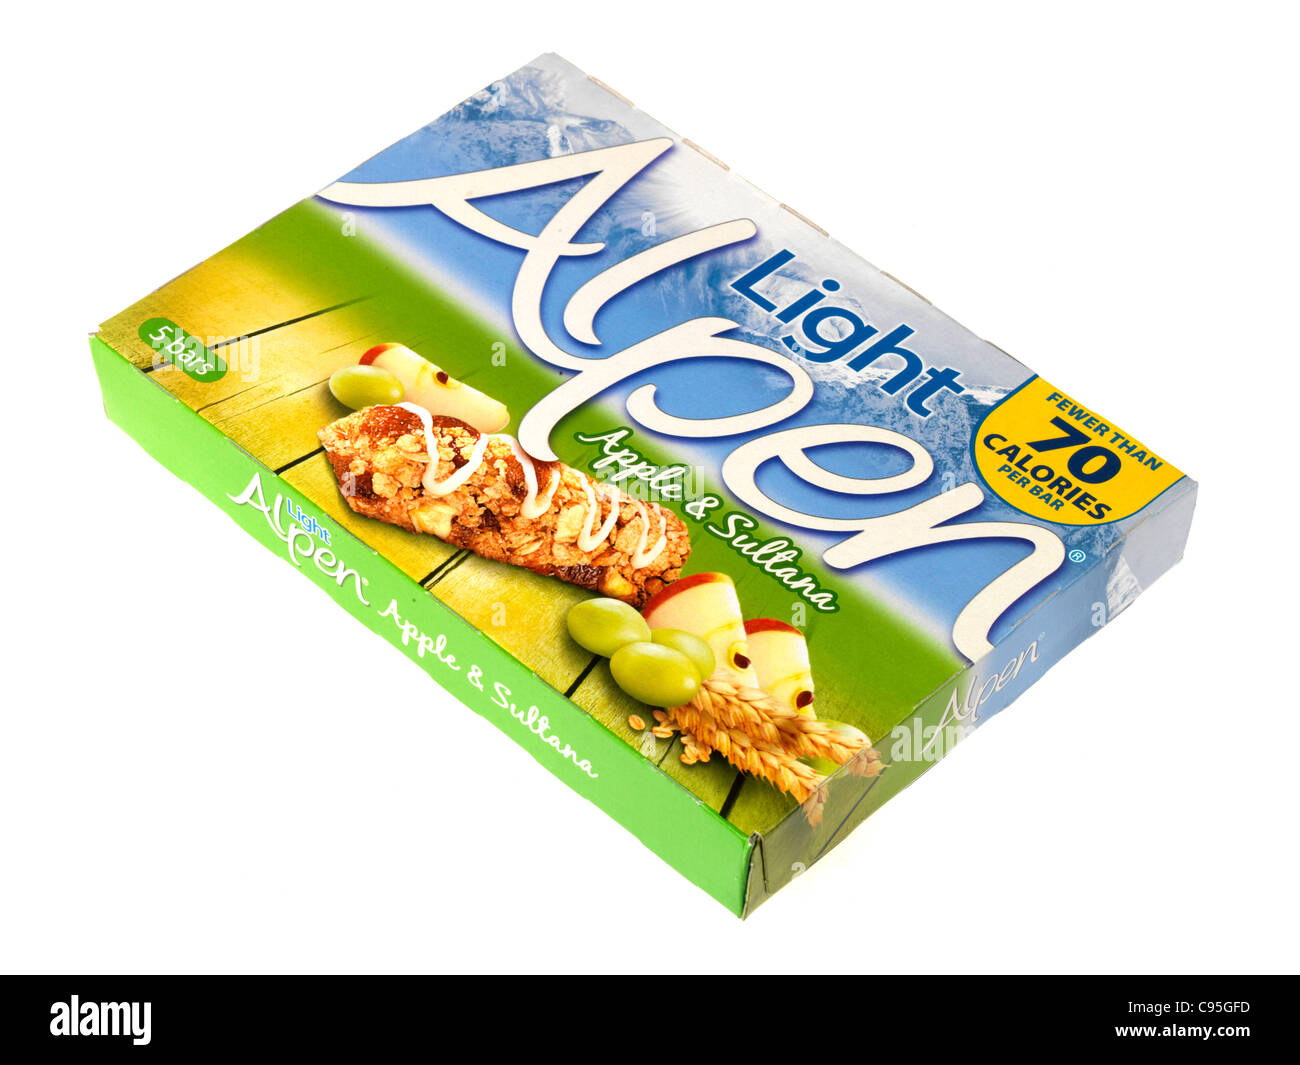 Alpen light apple and sultana cereal bars stock photo 40075377 alamy alpen light apple and sultana cereal bars aloadofball Image collections